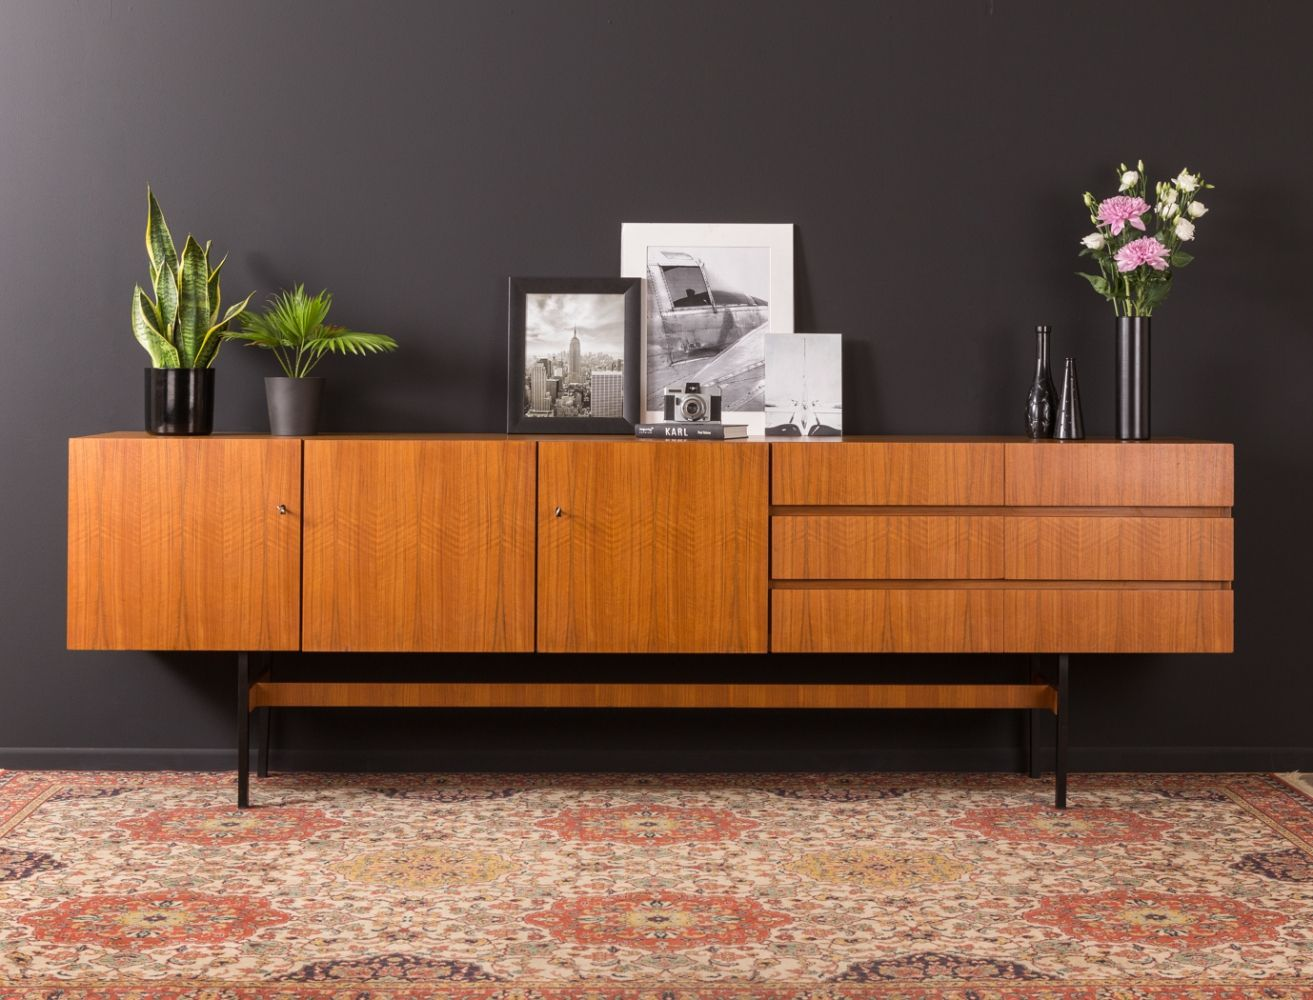 For Sale Sideboard By Musterring From The 1960s Vintage Sideboard Mid Century Furniture Sideboard